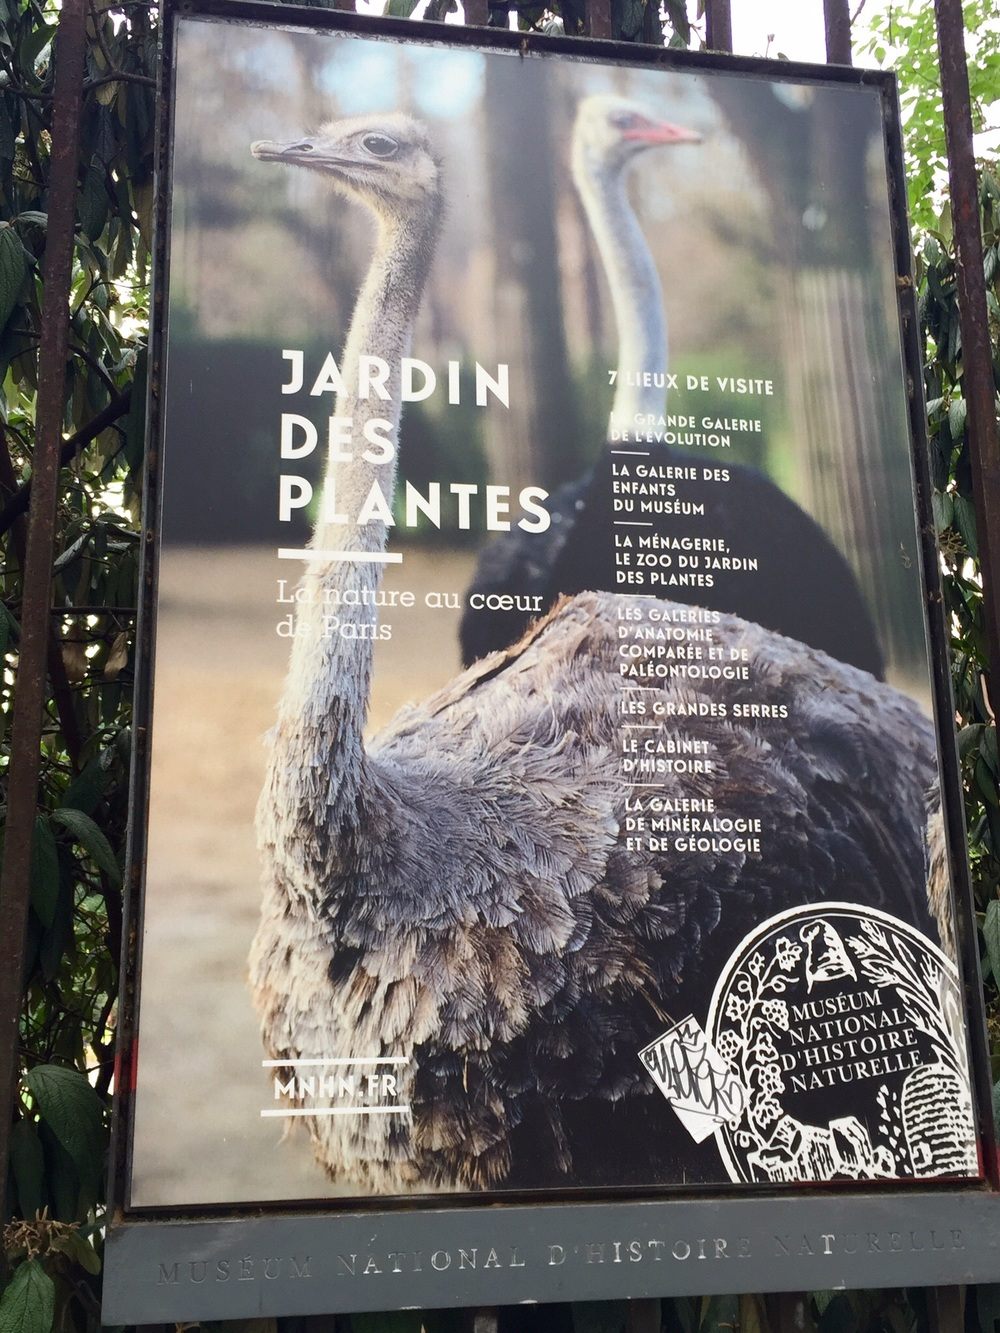 Ad featuring the ostriches at the Ménagerie , Paris